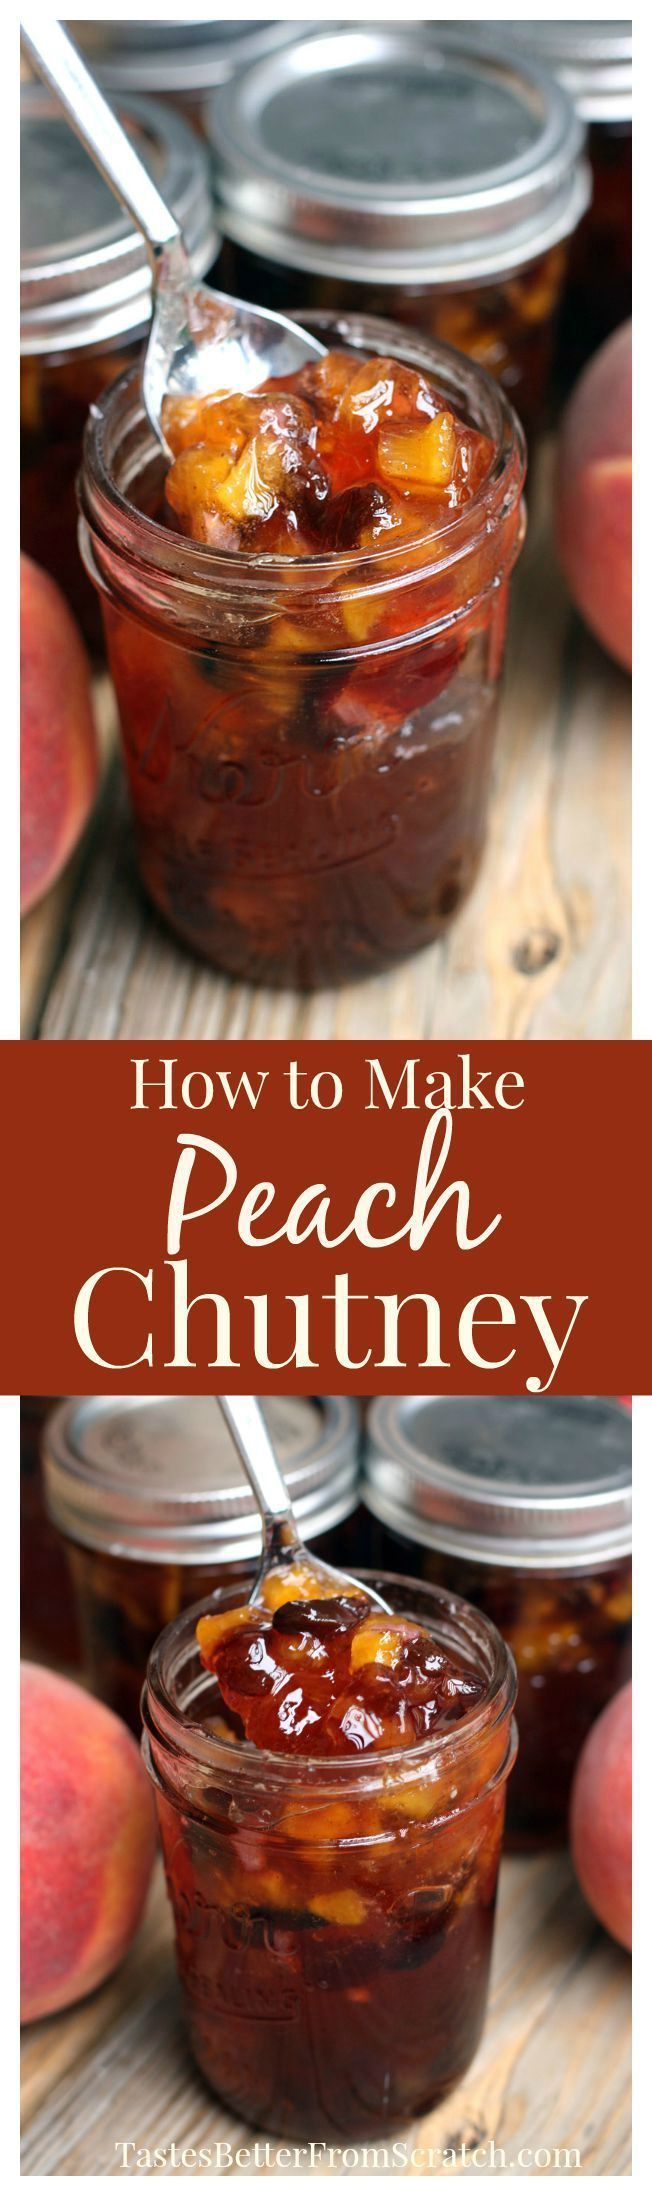 Homemade Peach Chutney is a great toast topper, or just throw it on your PBJ.#affiliatelink